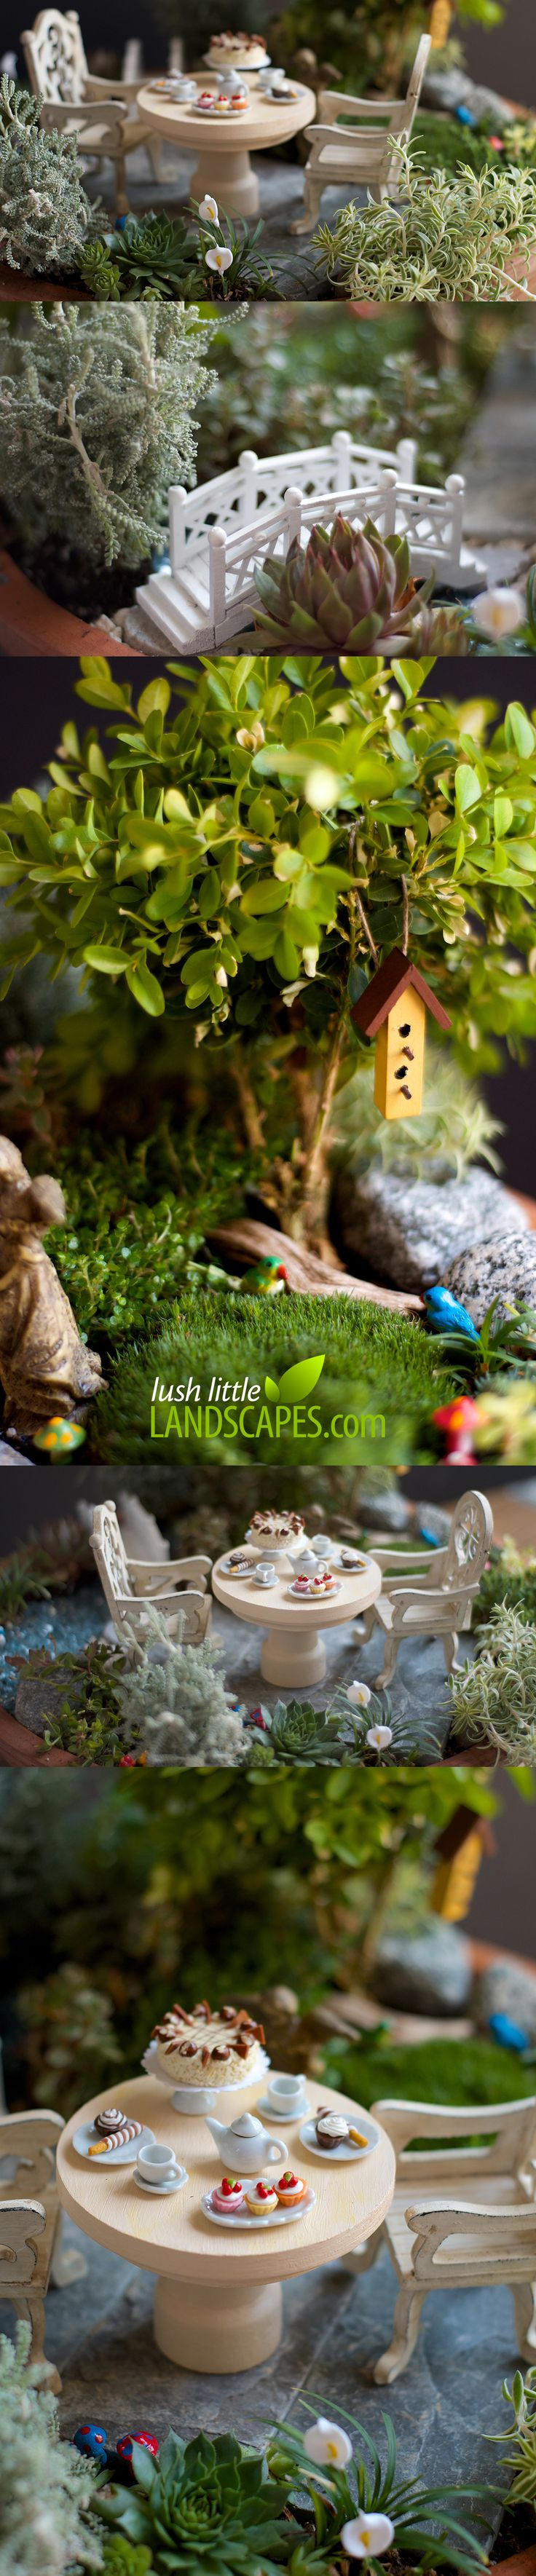 Best lll composition and design for miniature gardens ideas on